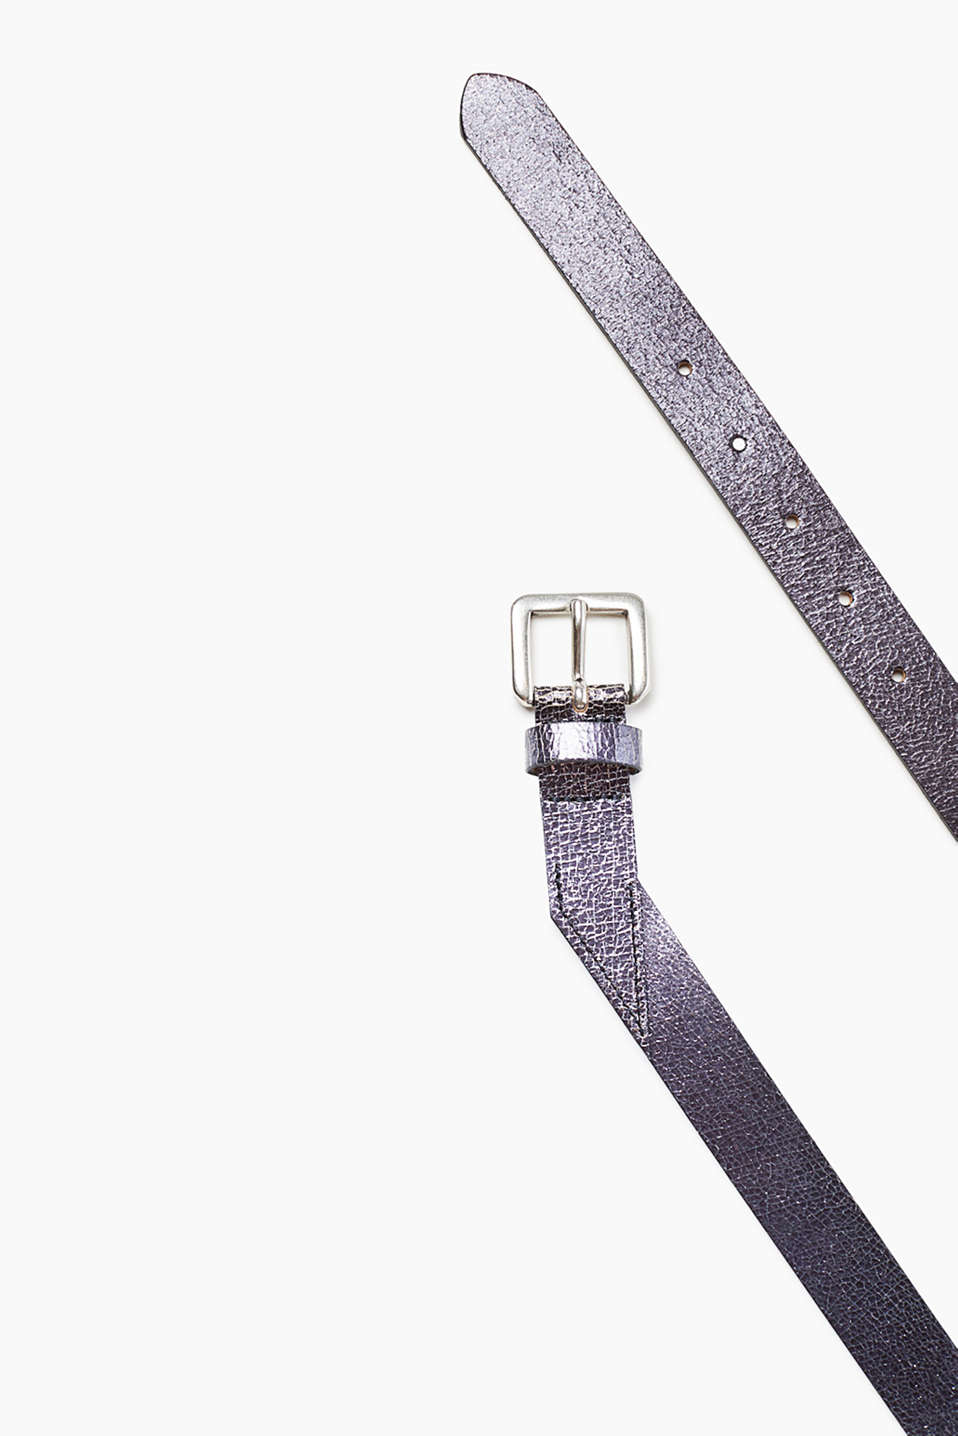 Asymmetric belt in a grained metallic look, in smooth cowhide leather